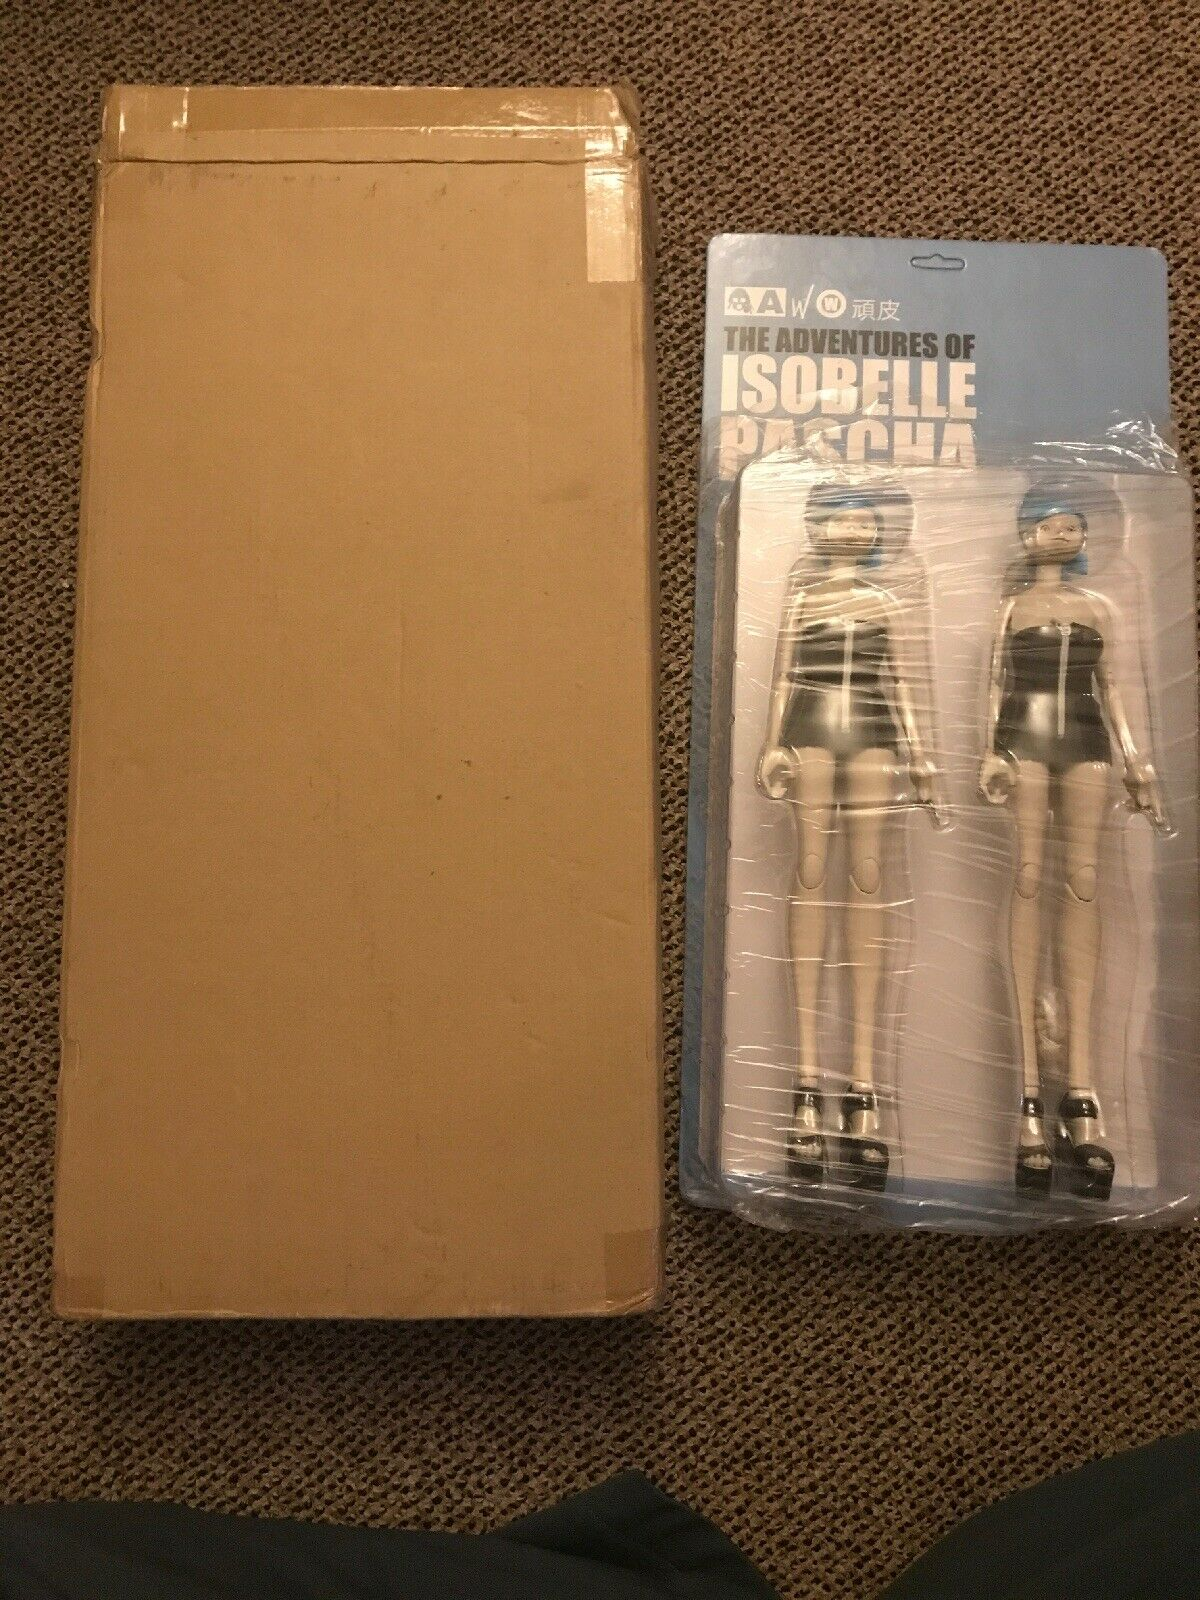 ThreeA Ashley Wood 3A World PASCHA WANPI SISTER wampi 1 6 SCALE Set Unopened MOC